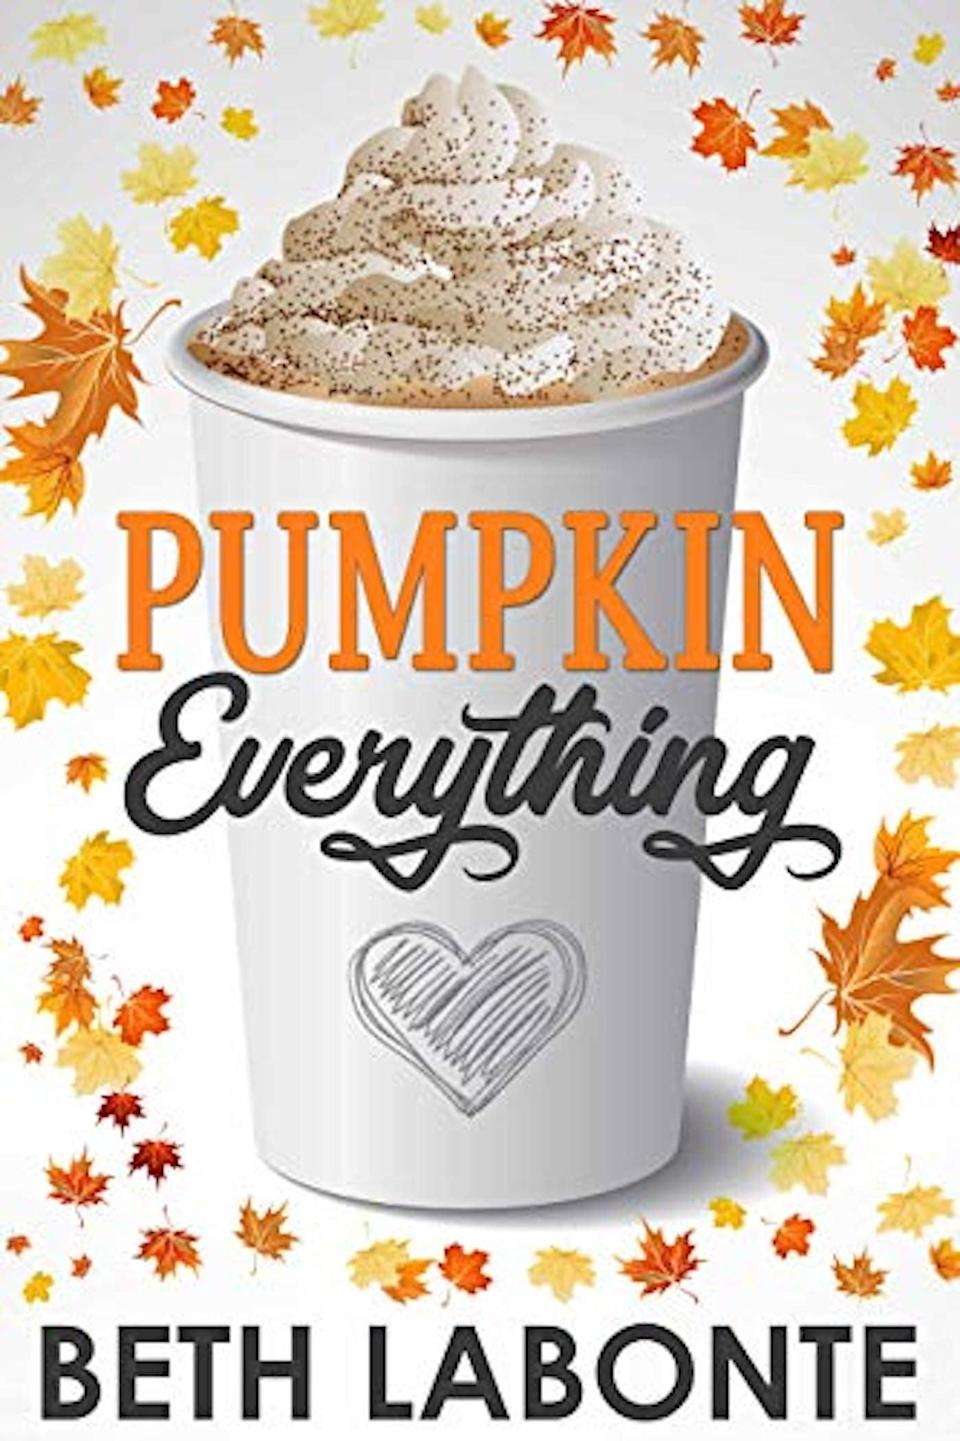 """<p>Beth Labonte's <span><b>Pumpkin Everything</b></span> serves a slice of life with second chances of romance, all with the flair of fall vibes! After Amy Fox, a horror novelist, calls off her fall <a class=""""link rapid-noclick-resp"""" href=""""https://www.popsugar.com/latest/Wedding"""" rel=""""nofollow noopener"""" target=""""_blank"""" data-ylk=""""slk:wedding"""">wedding</a> and develops a serious case of writer's block alongside a distaste toward pumpkin spice, she is reunited with her childhood best friend and first love, Kit Parker. </p>"""